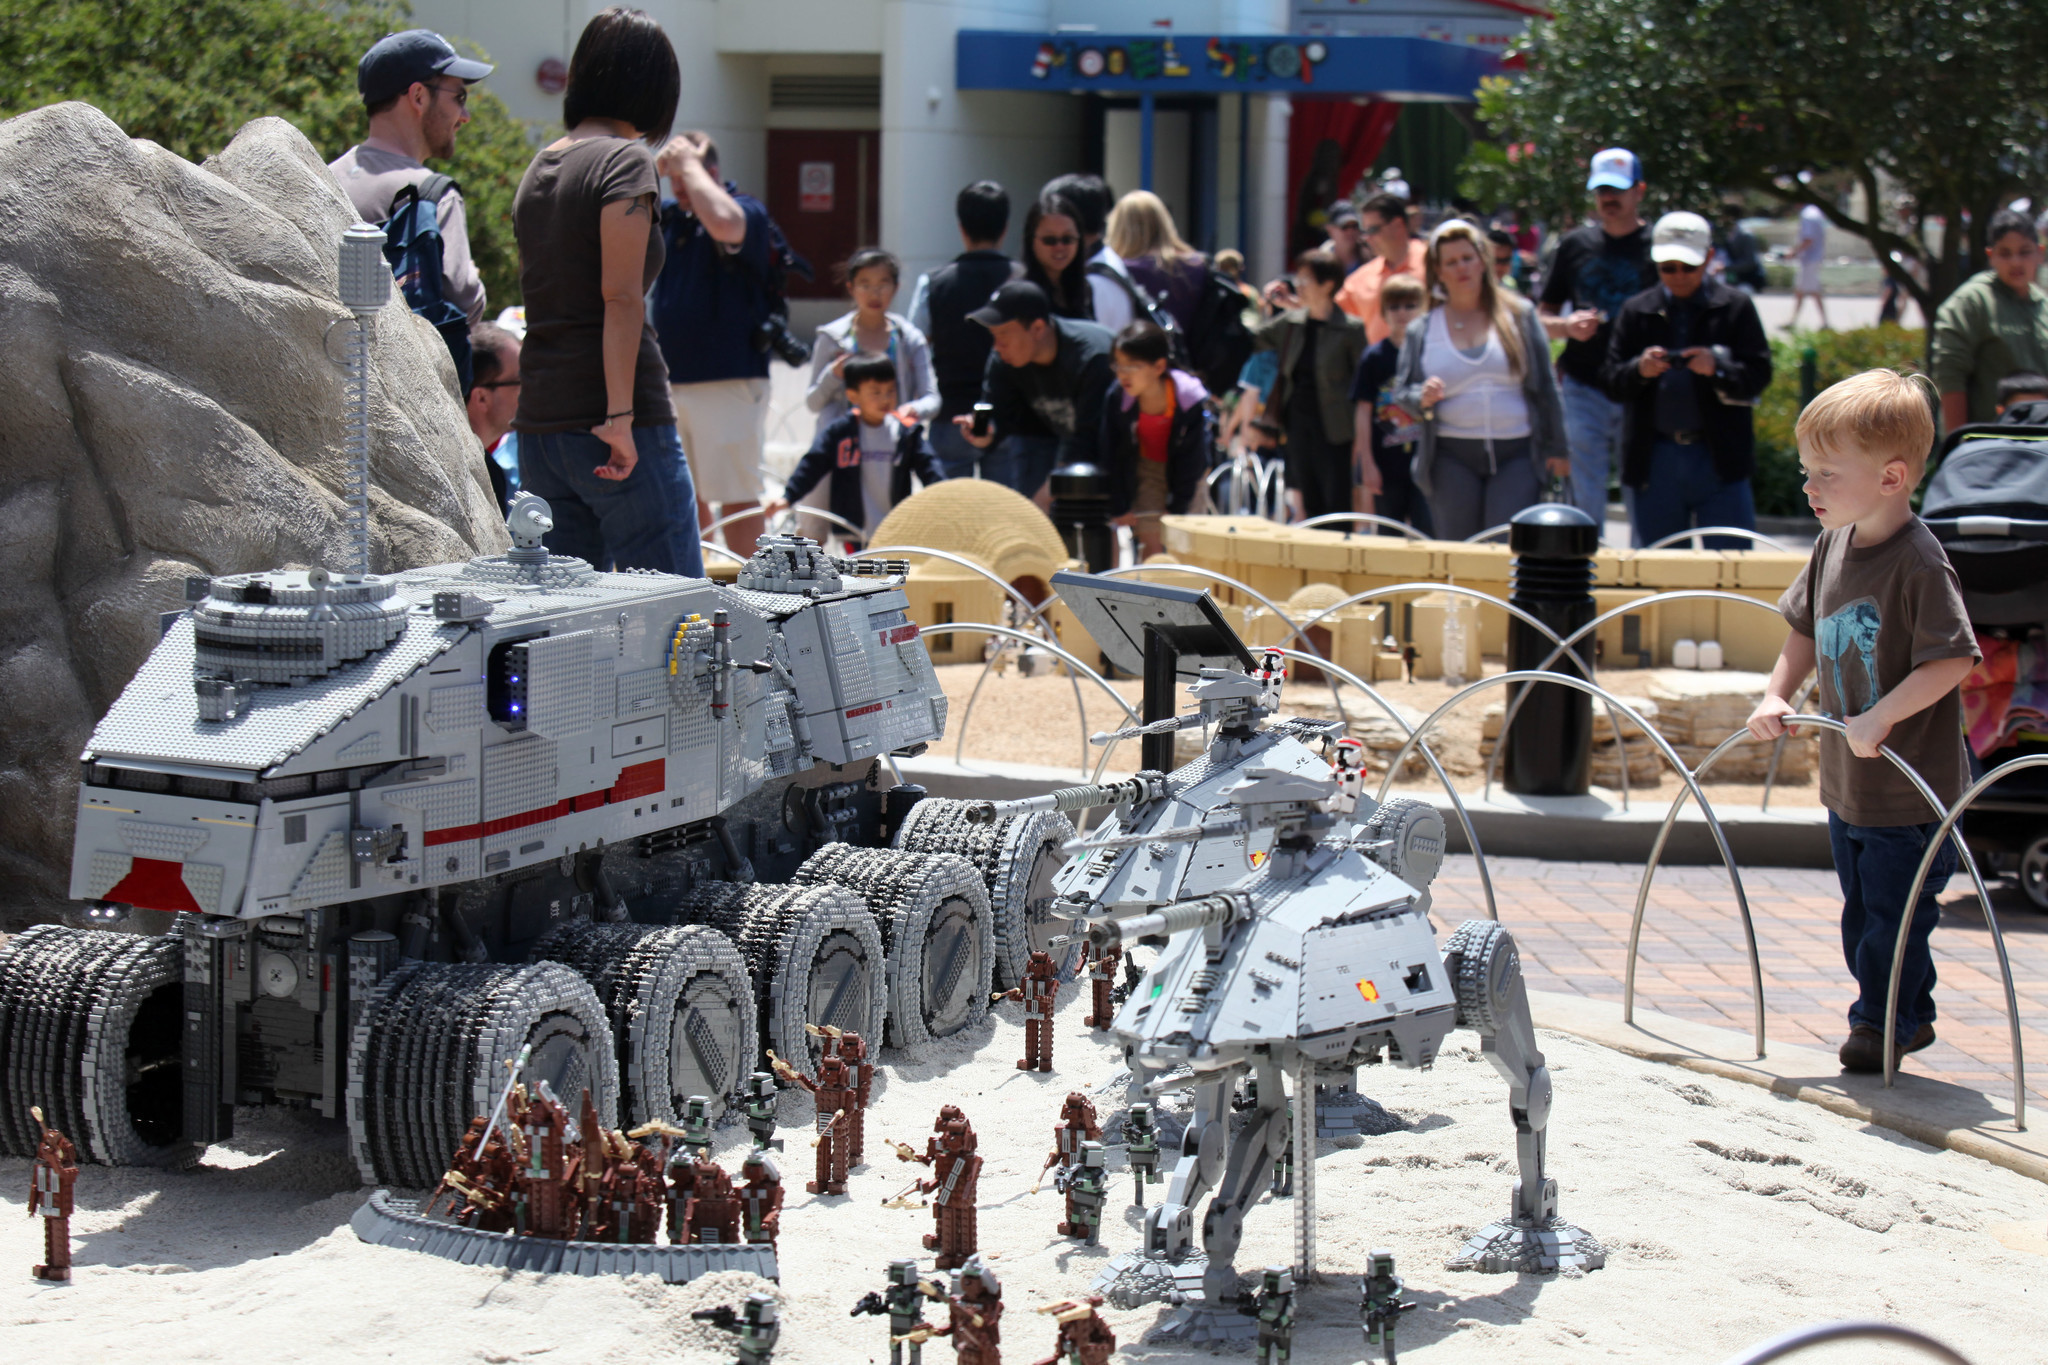 Legoland Adding To Star Wars Land Water Park The San